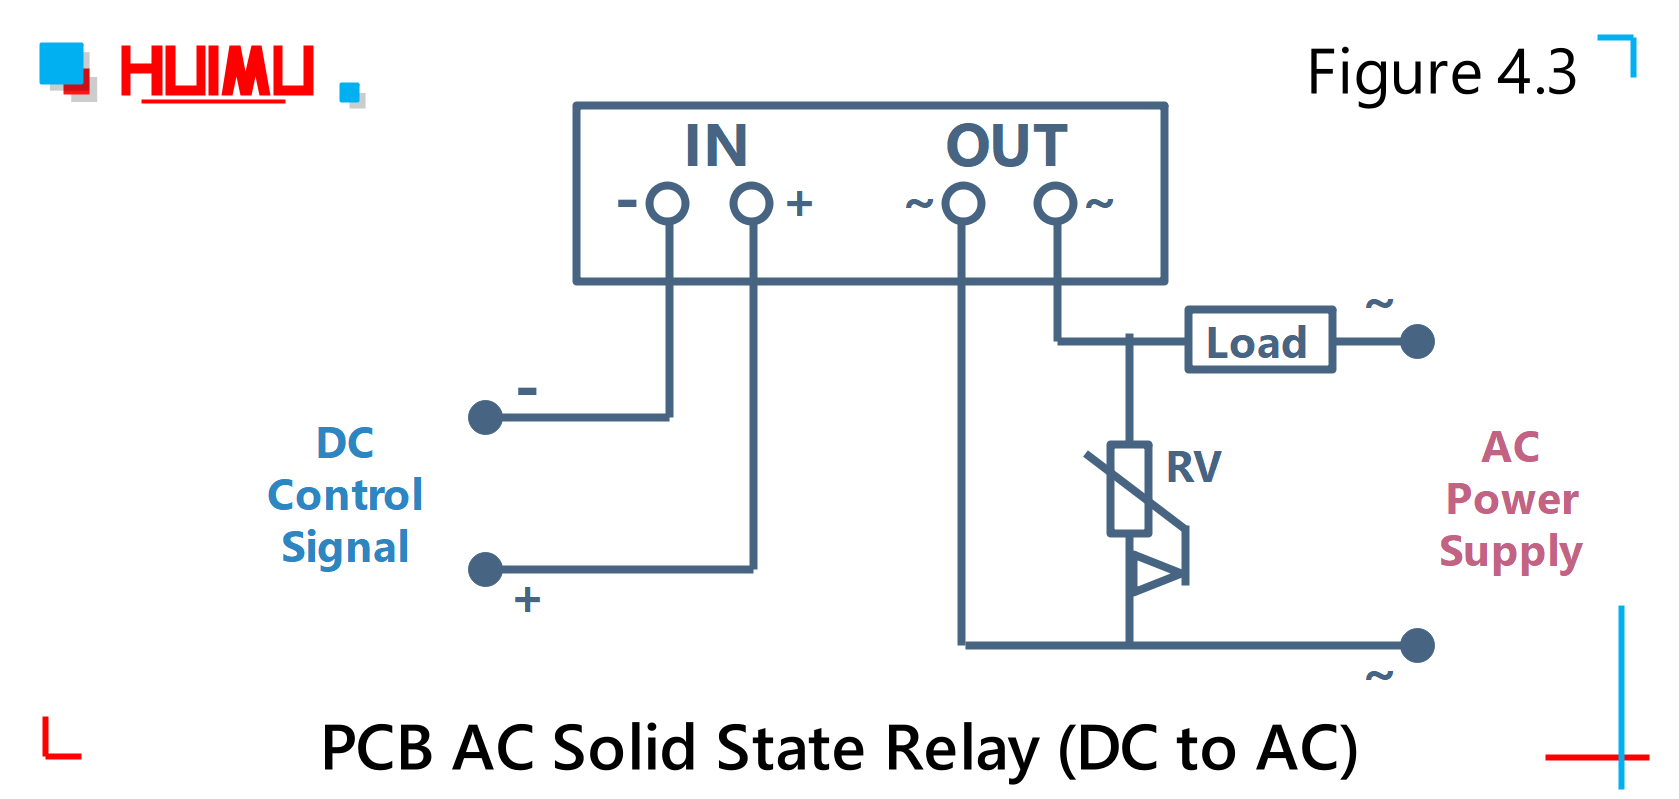 wiring diagram and circuit diagram of mgr mager pcb ac solid state relay  (dc to